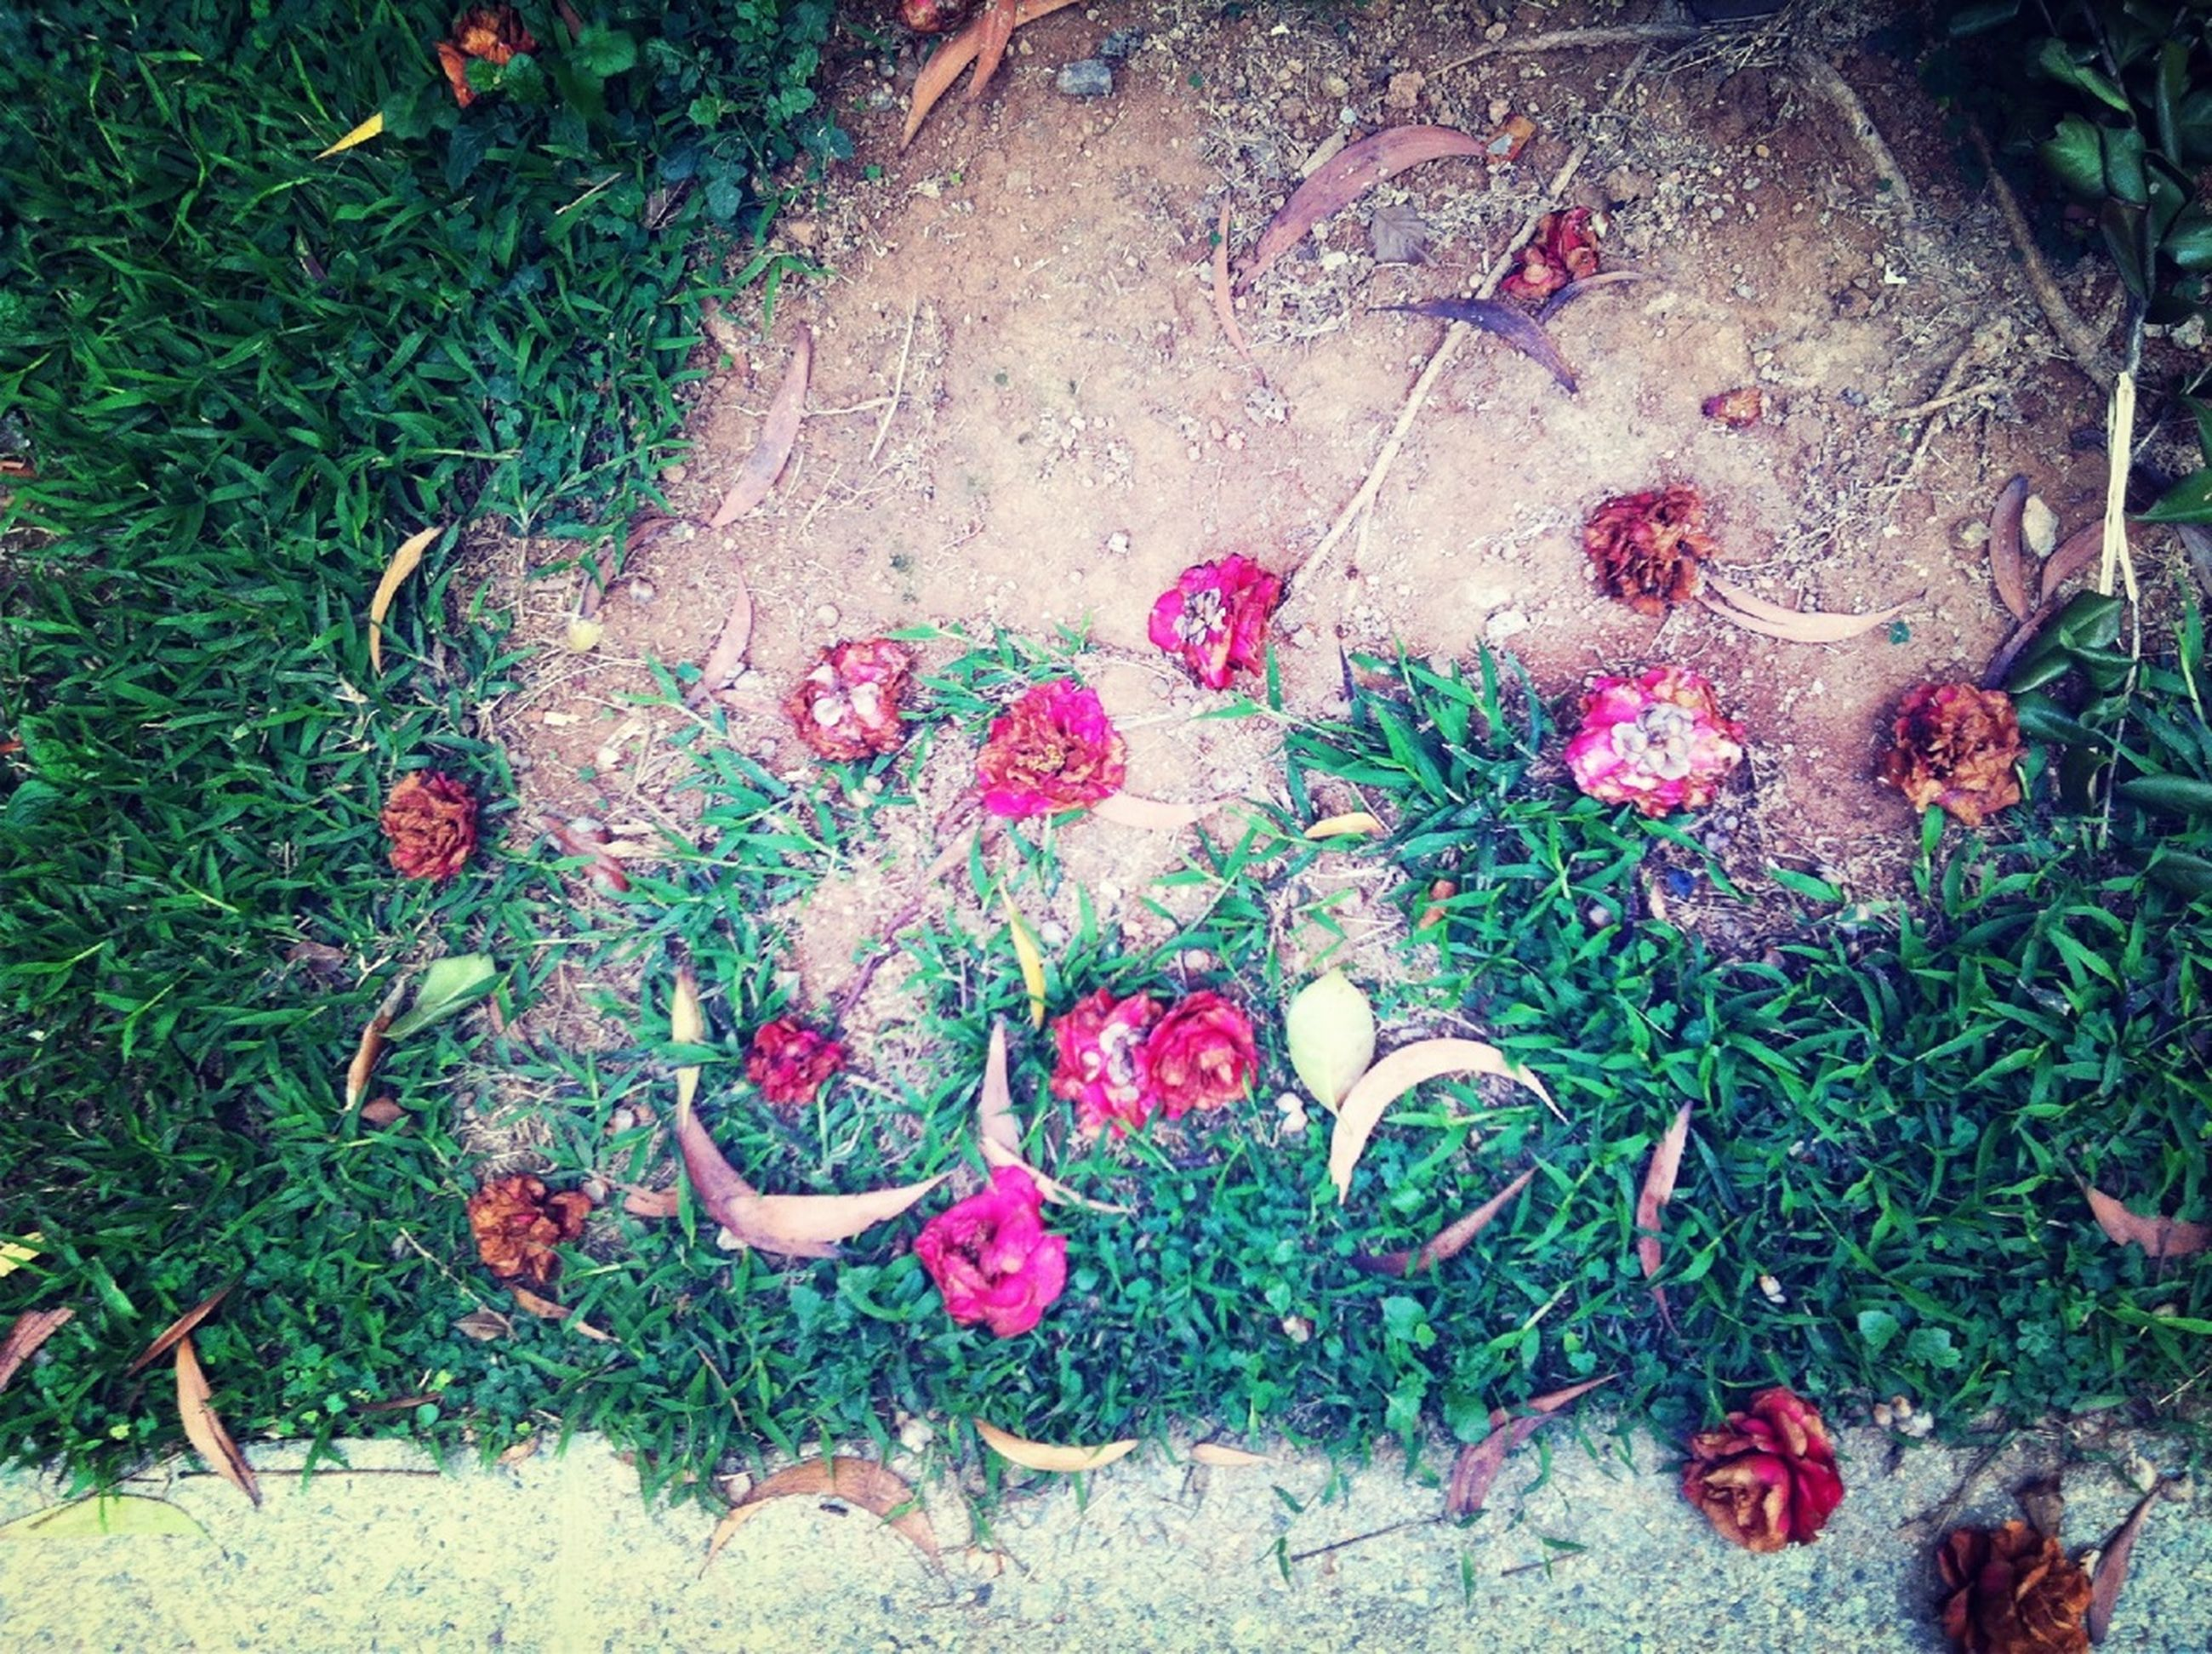 high angle view, flower, plant, growth, pink color, nature, petal, ground, fragility, leaf, field, grass, day, outdoors, sunlight, no people, beauty in nature, fallen, park - man made space, red